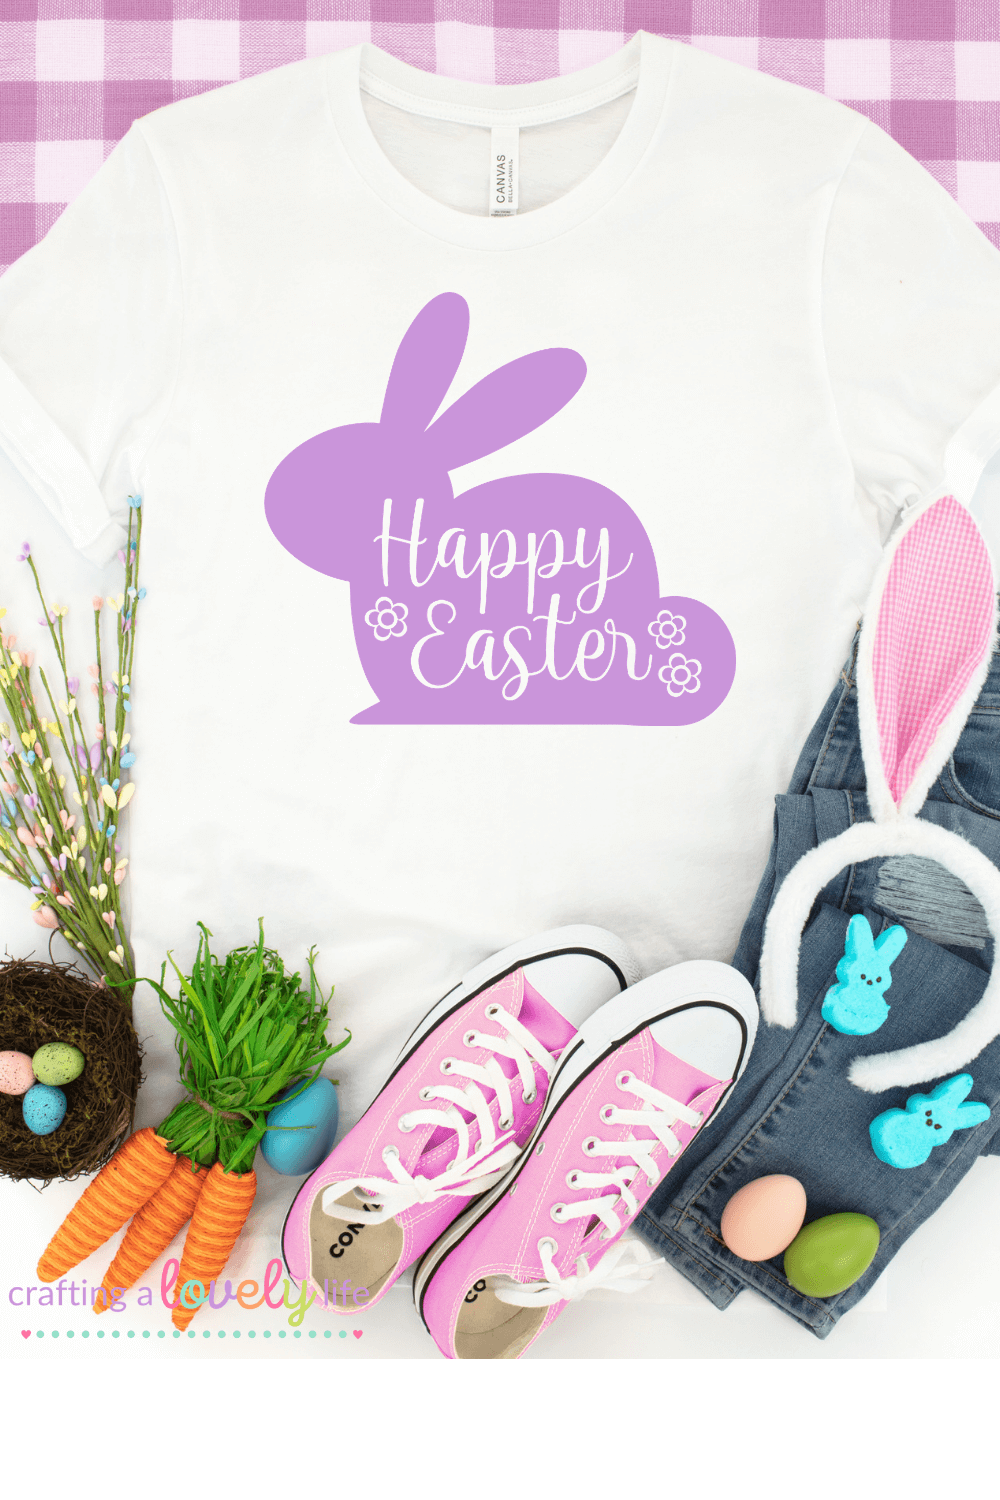 Happy Easter Bunny Free SVG Cut File